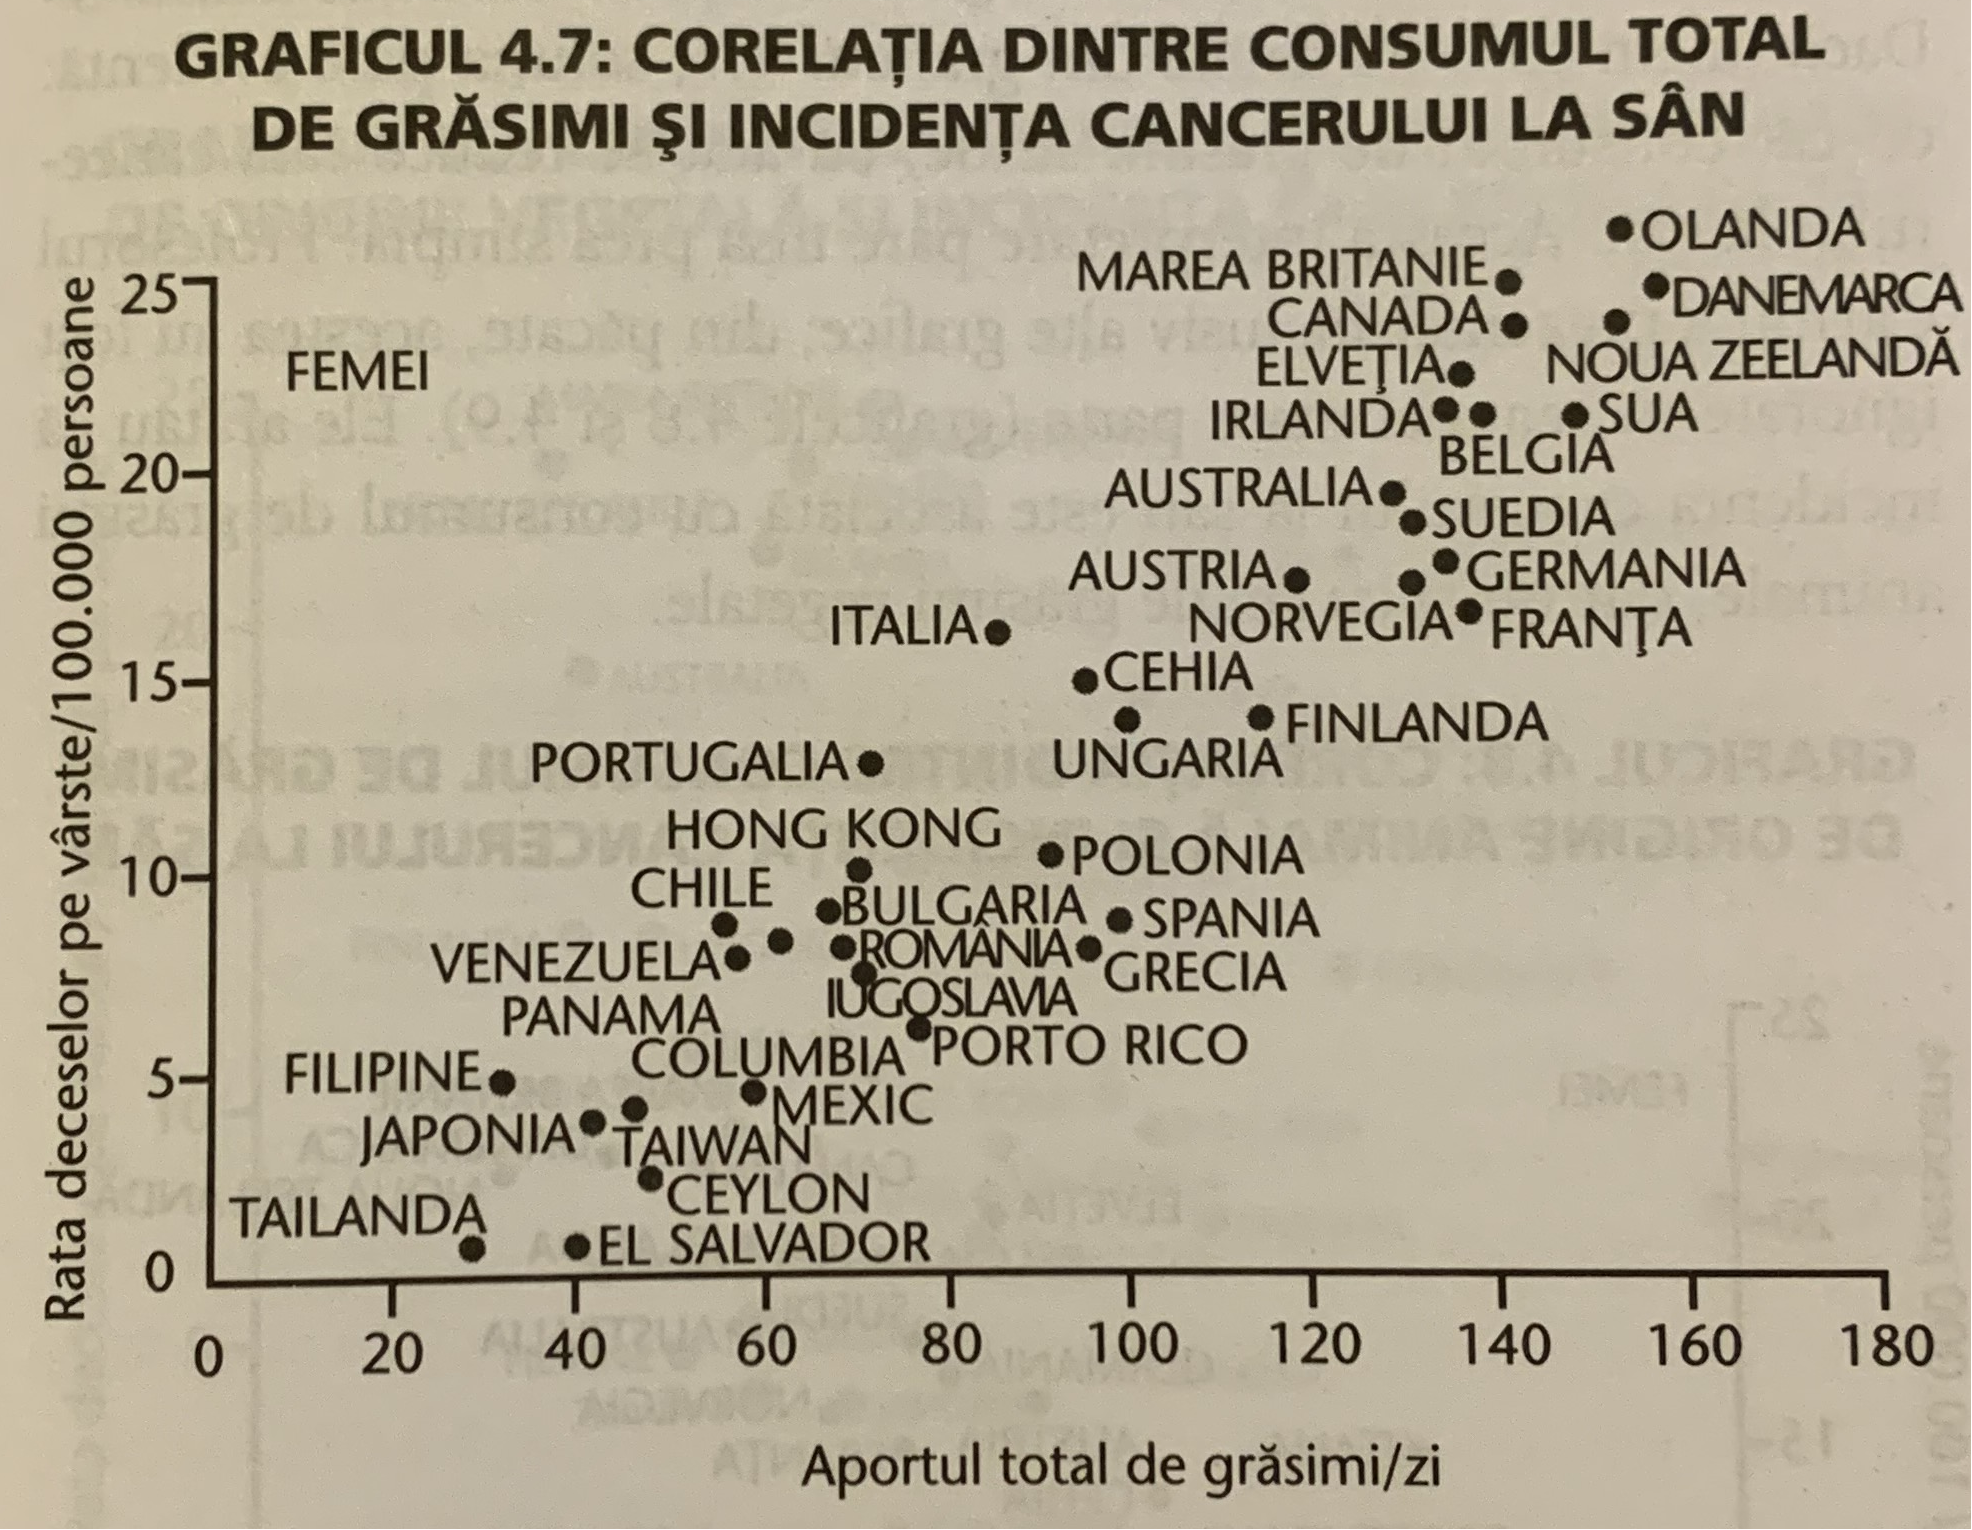 Graficul 4.7 din Studiul China, Dr. T. Colin Campbell